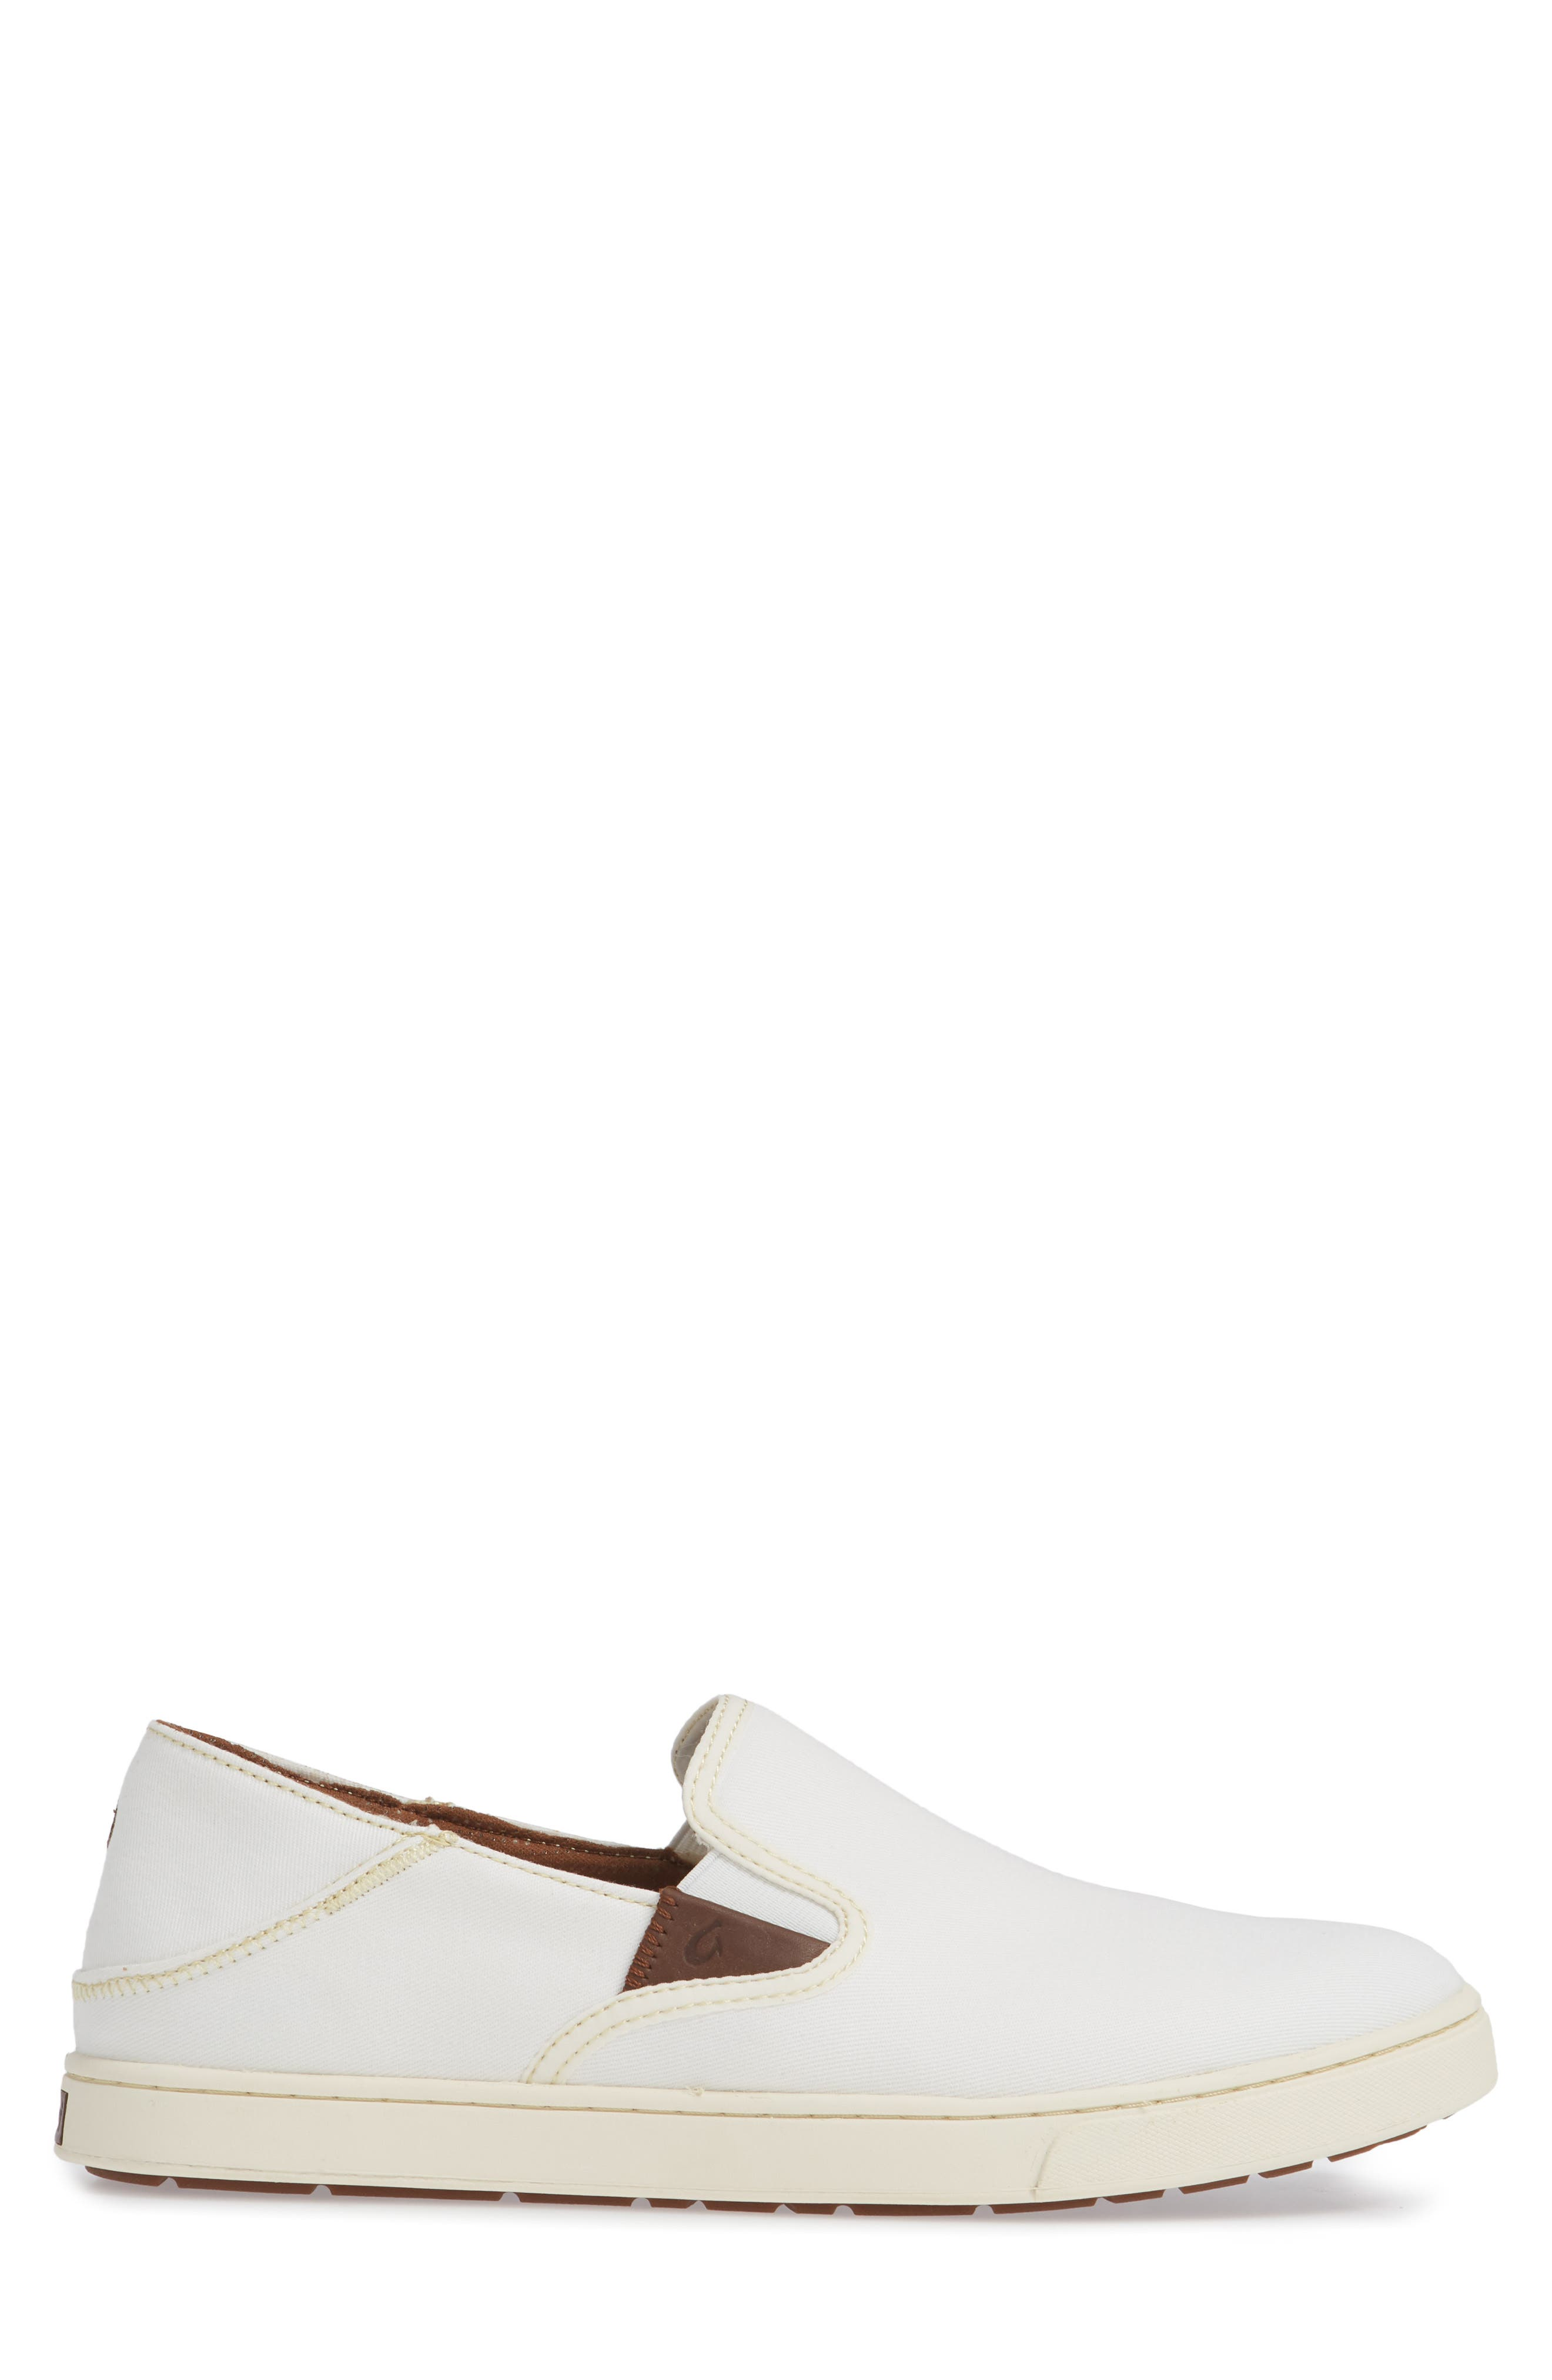 Kahu Collapsible Slip-On Sneaker,                             Alternate thumbnail 3, color,                             OFF WHITE/ OFF WHITE TEXTILE